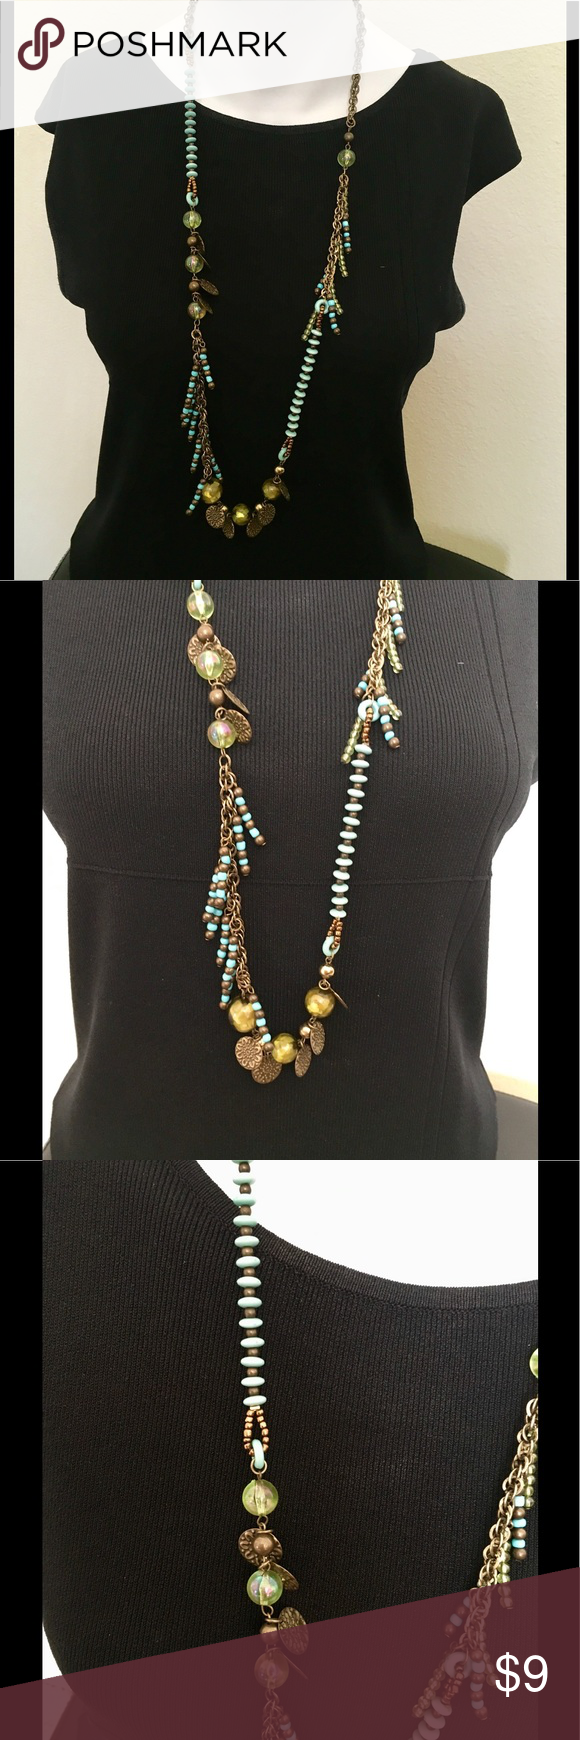 Treska Turquoise & Copper Beaded Necklace This is a fun, casual necklace from Treska. Featured green, turquoise and bronze-colored beads with plastics discs. Wear to work or for a night out! Treska Jewelry Necklaces